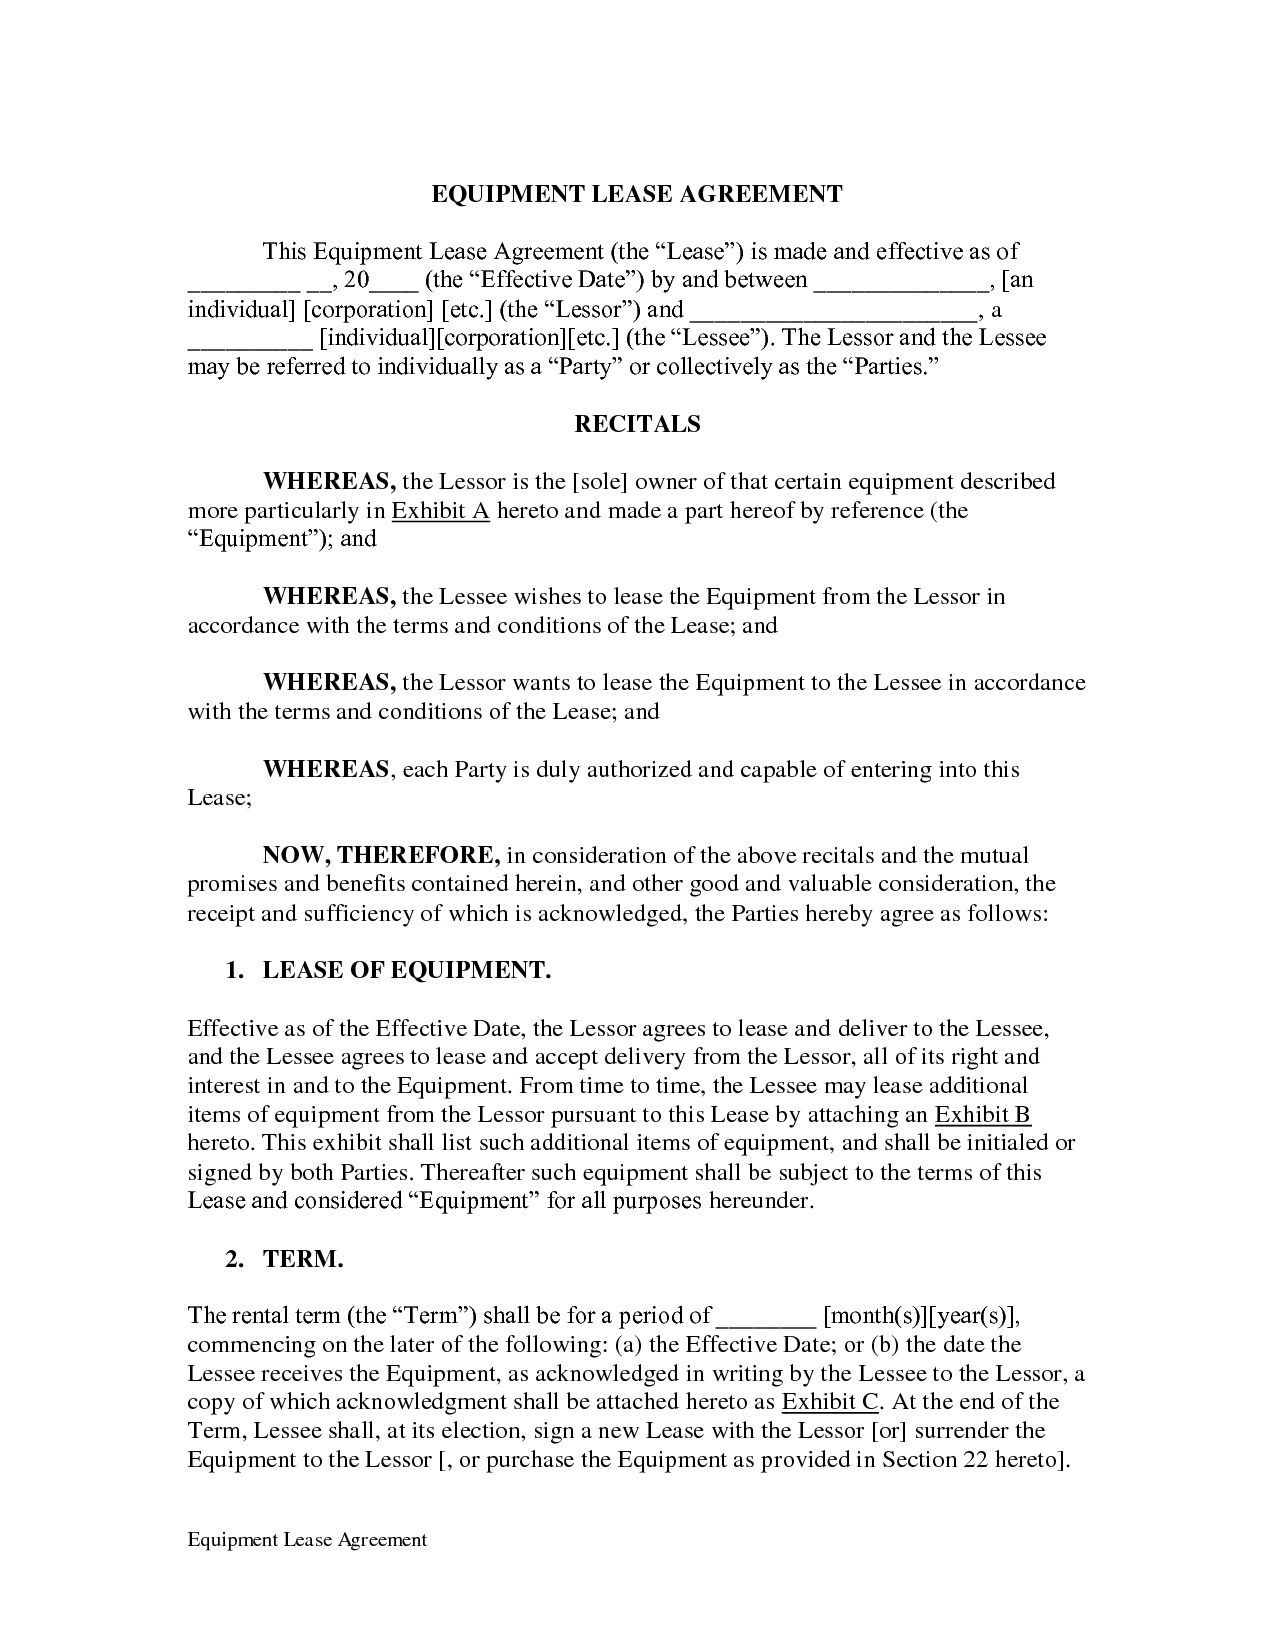 Legalzoom Real Estate Forms